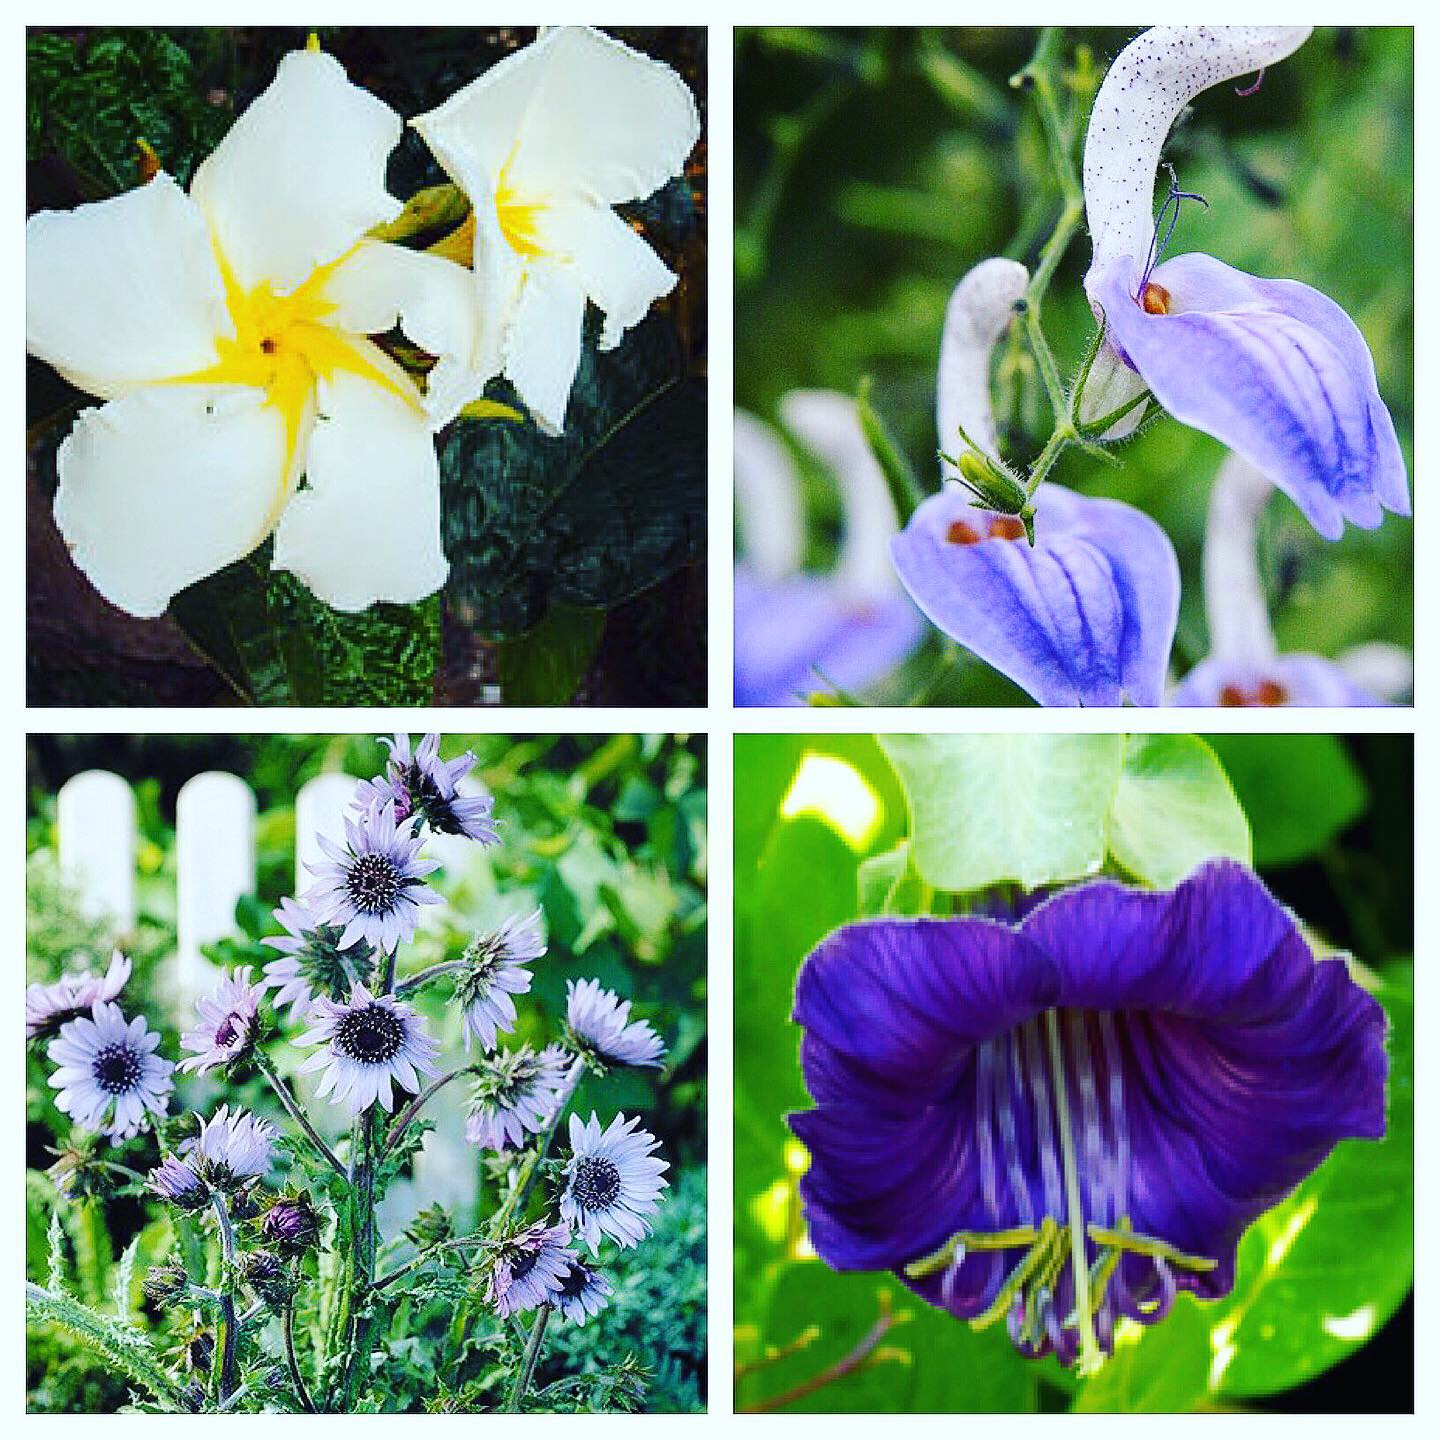 Clockwise from Top Left: Chonemorpha fragrans 'Frangipani Vine', Brilliantaisia owariensis 'Tropical Giant Salvia', Cobaea scandens 'Cup and Saucer Vine', and Berkheya purpurea 'African Thistle'